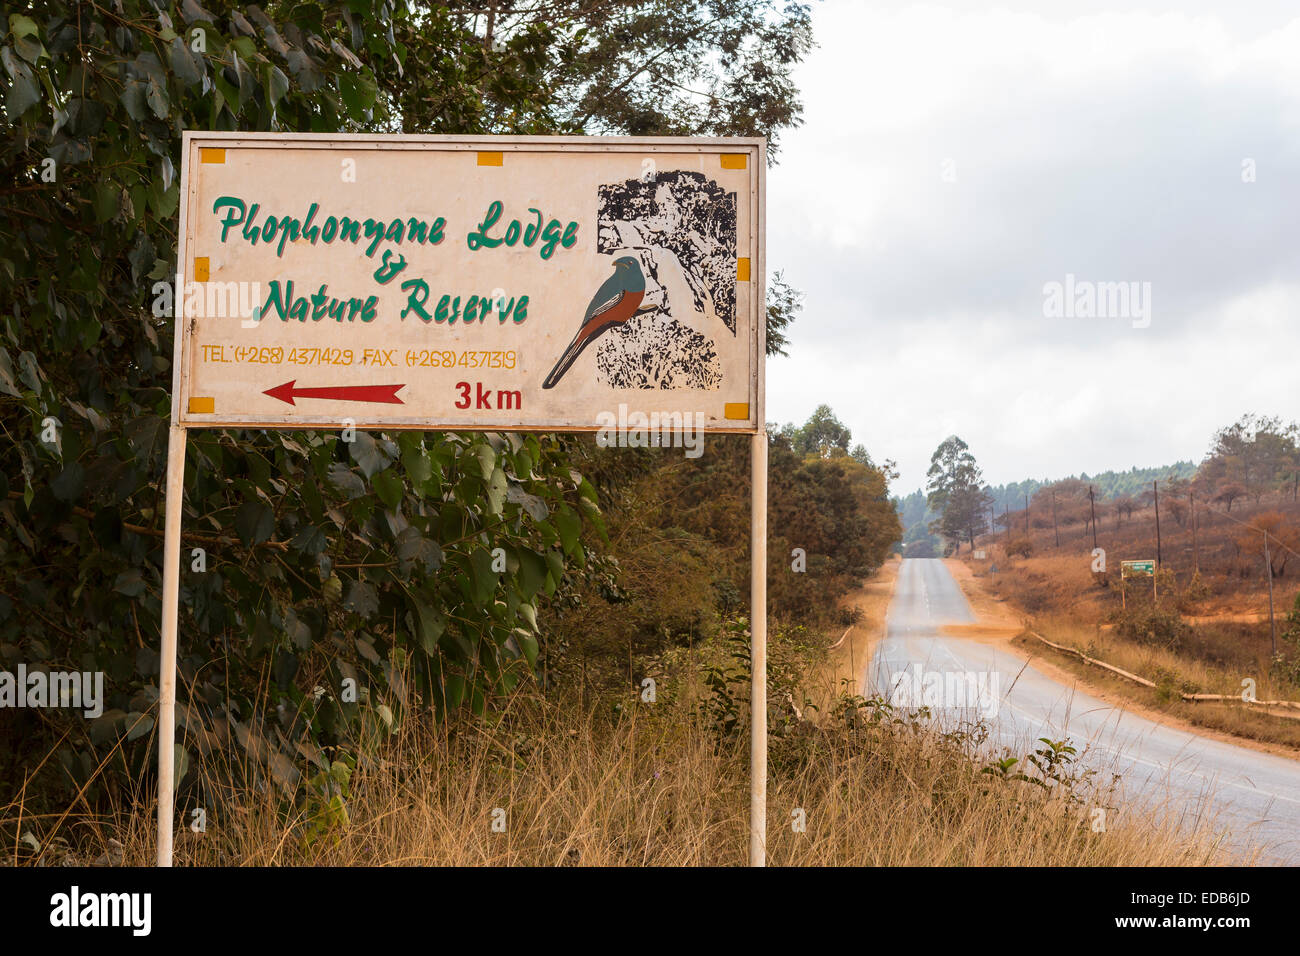 SWAZILAND, AFRICA - Sign for Phophonyane Nature Reserve. - Stock Image